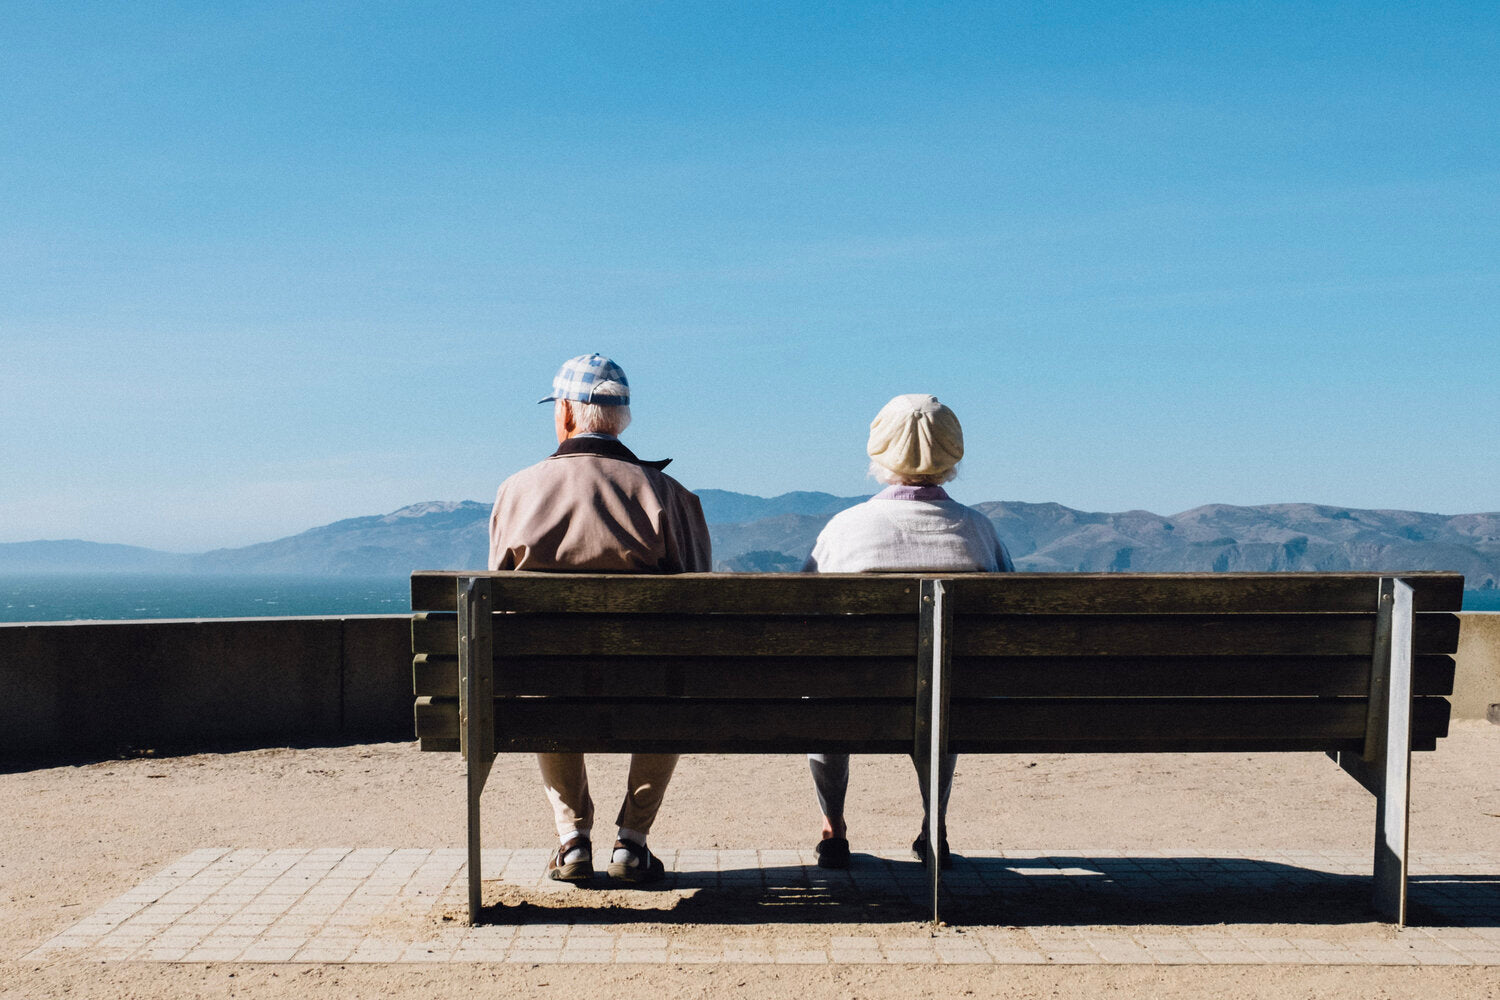 Elderly Couple With Asthma Sitting on Bench Looking Over Mountain Range